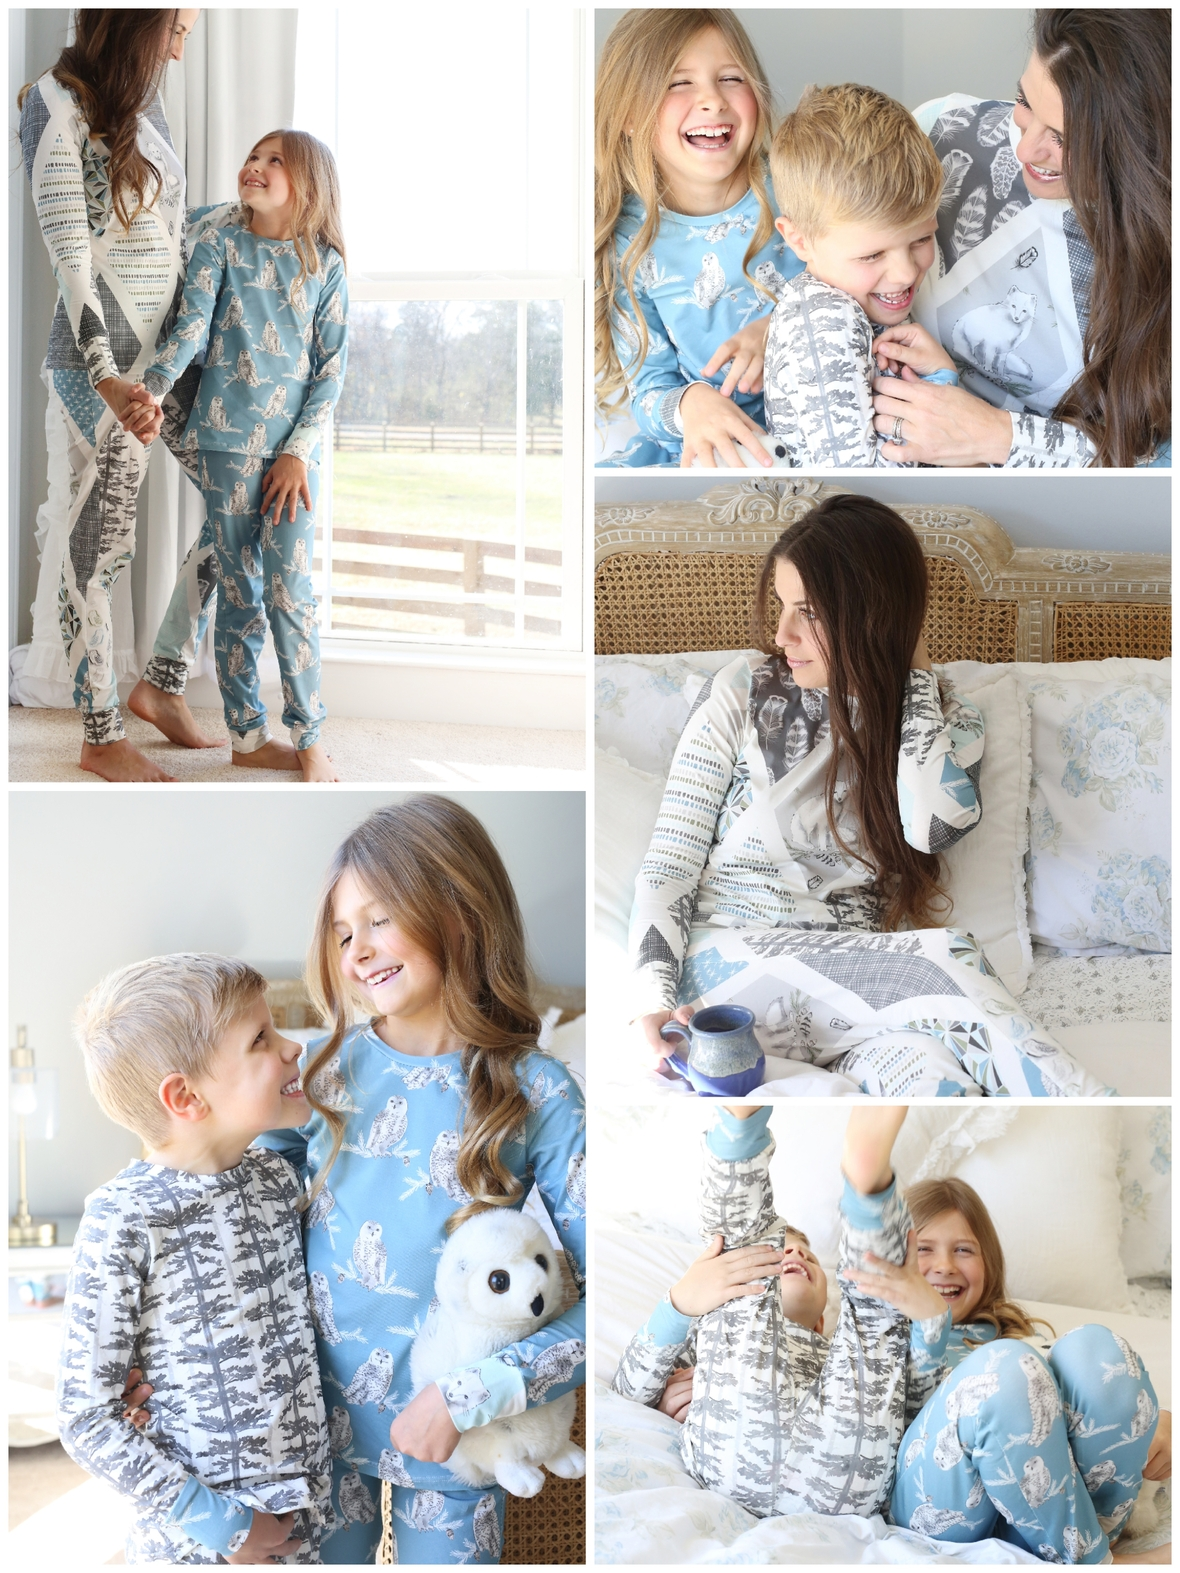 Tundra Knit Pajamas Violette Field Threads and Hawthorne Supply Co.